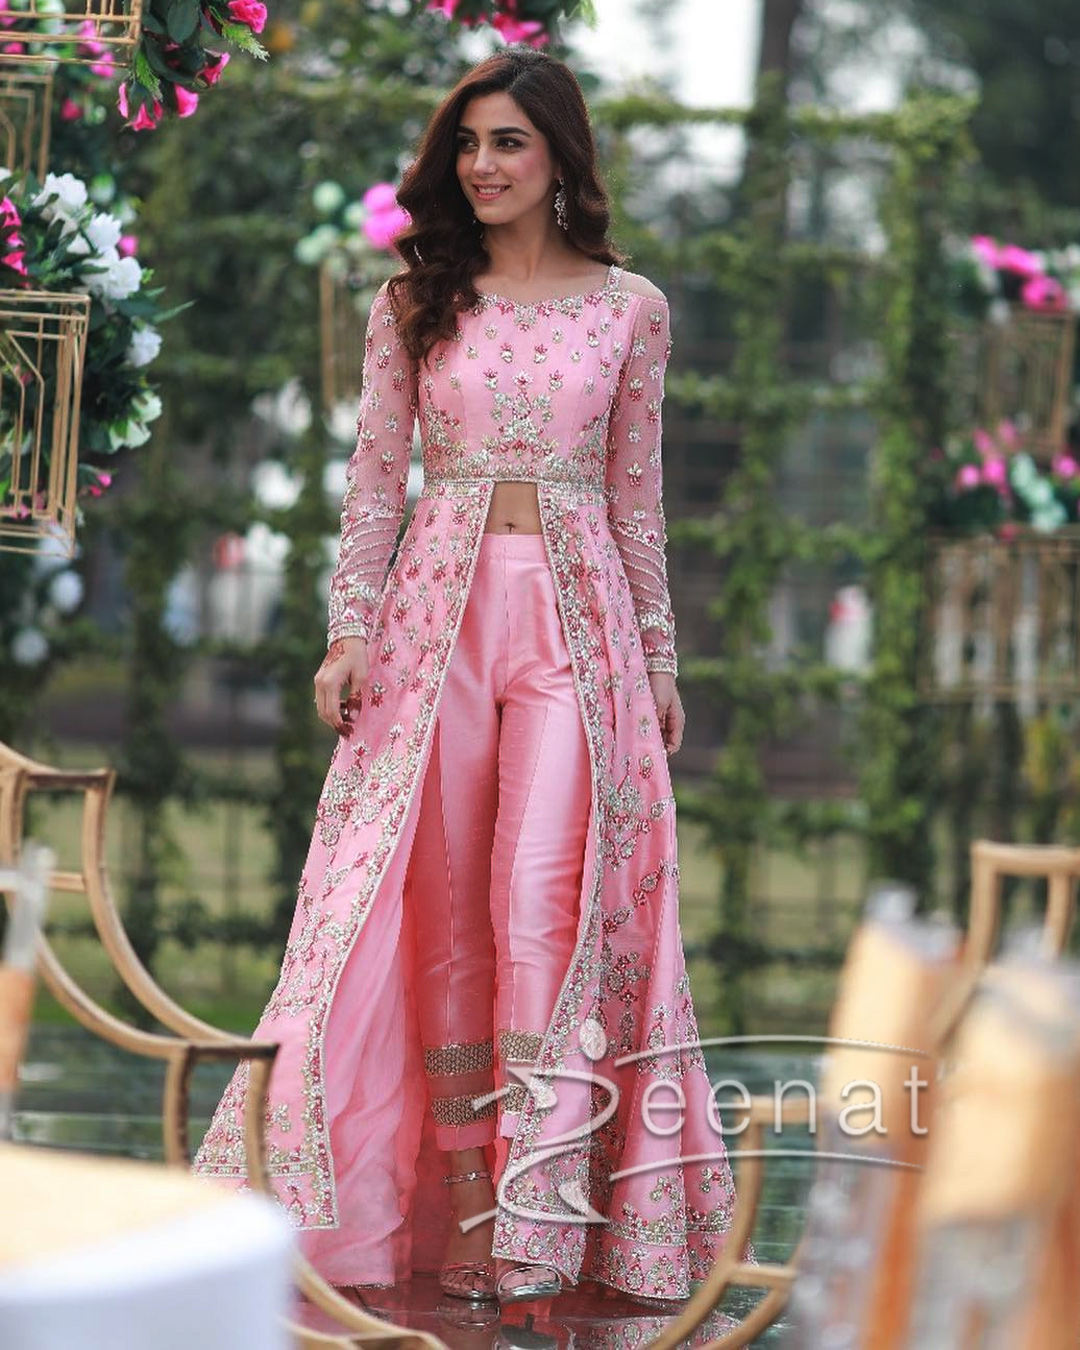 Maya Ali Stuns in Pink Dress by Faiza Saqlain